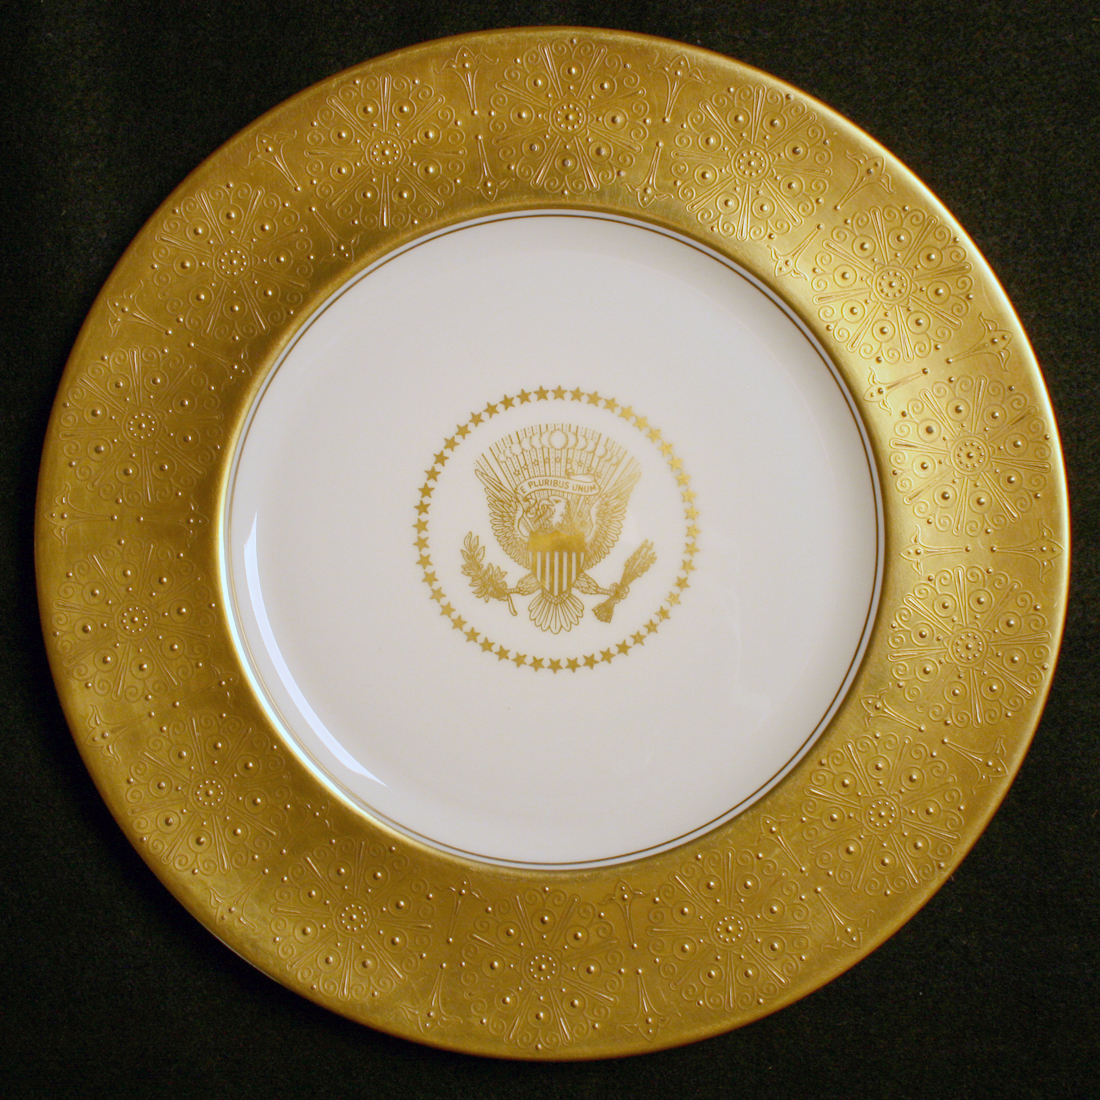 dwight eisenhower WHITE HOUSE china service plate